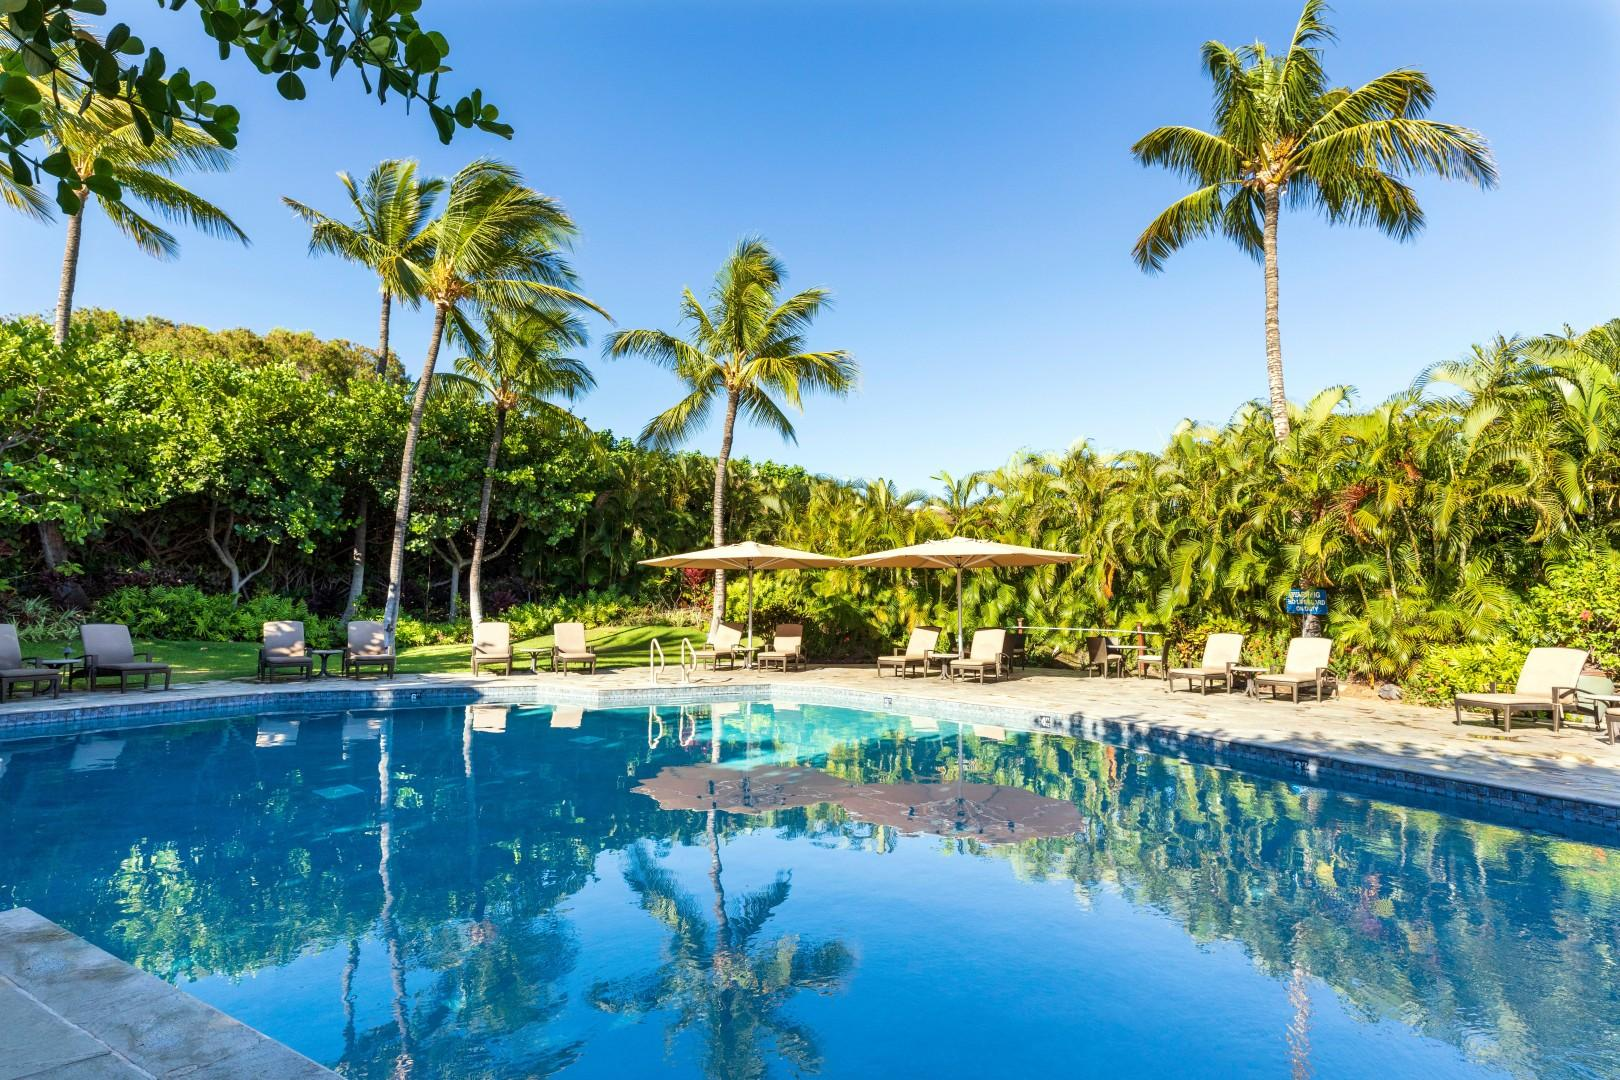 Enjoy the tropical pool just steps away from your unit.